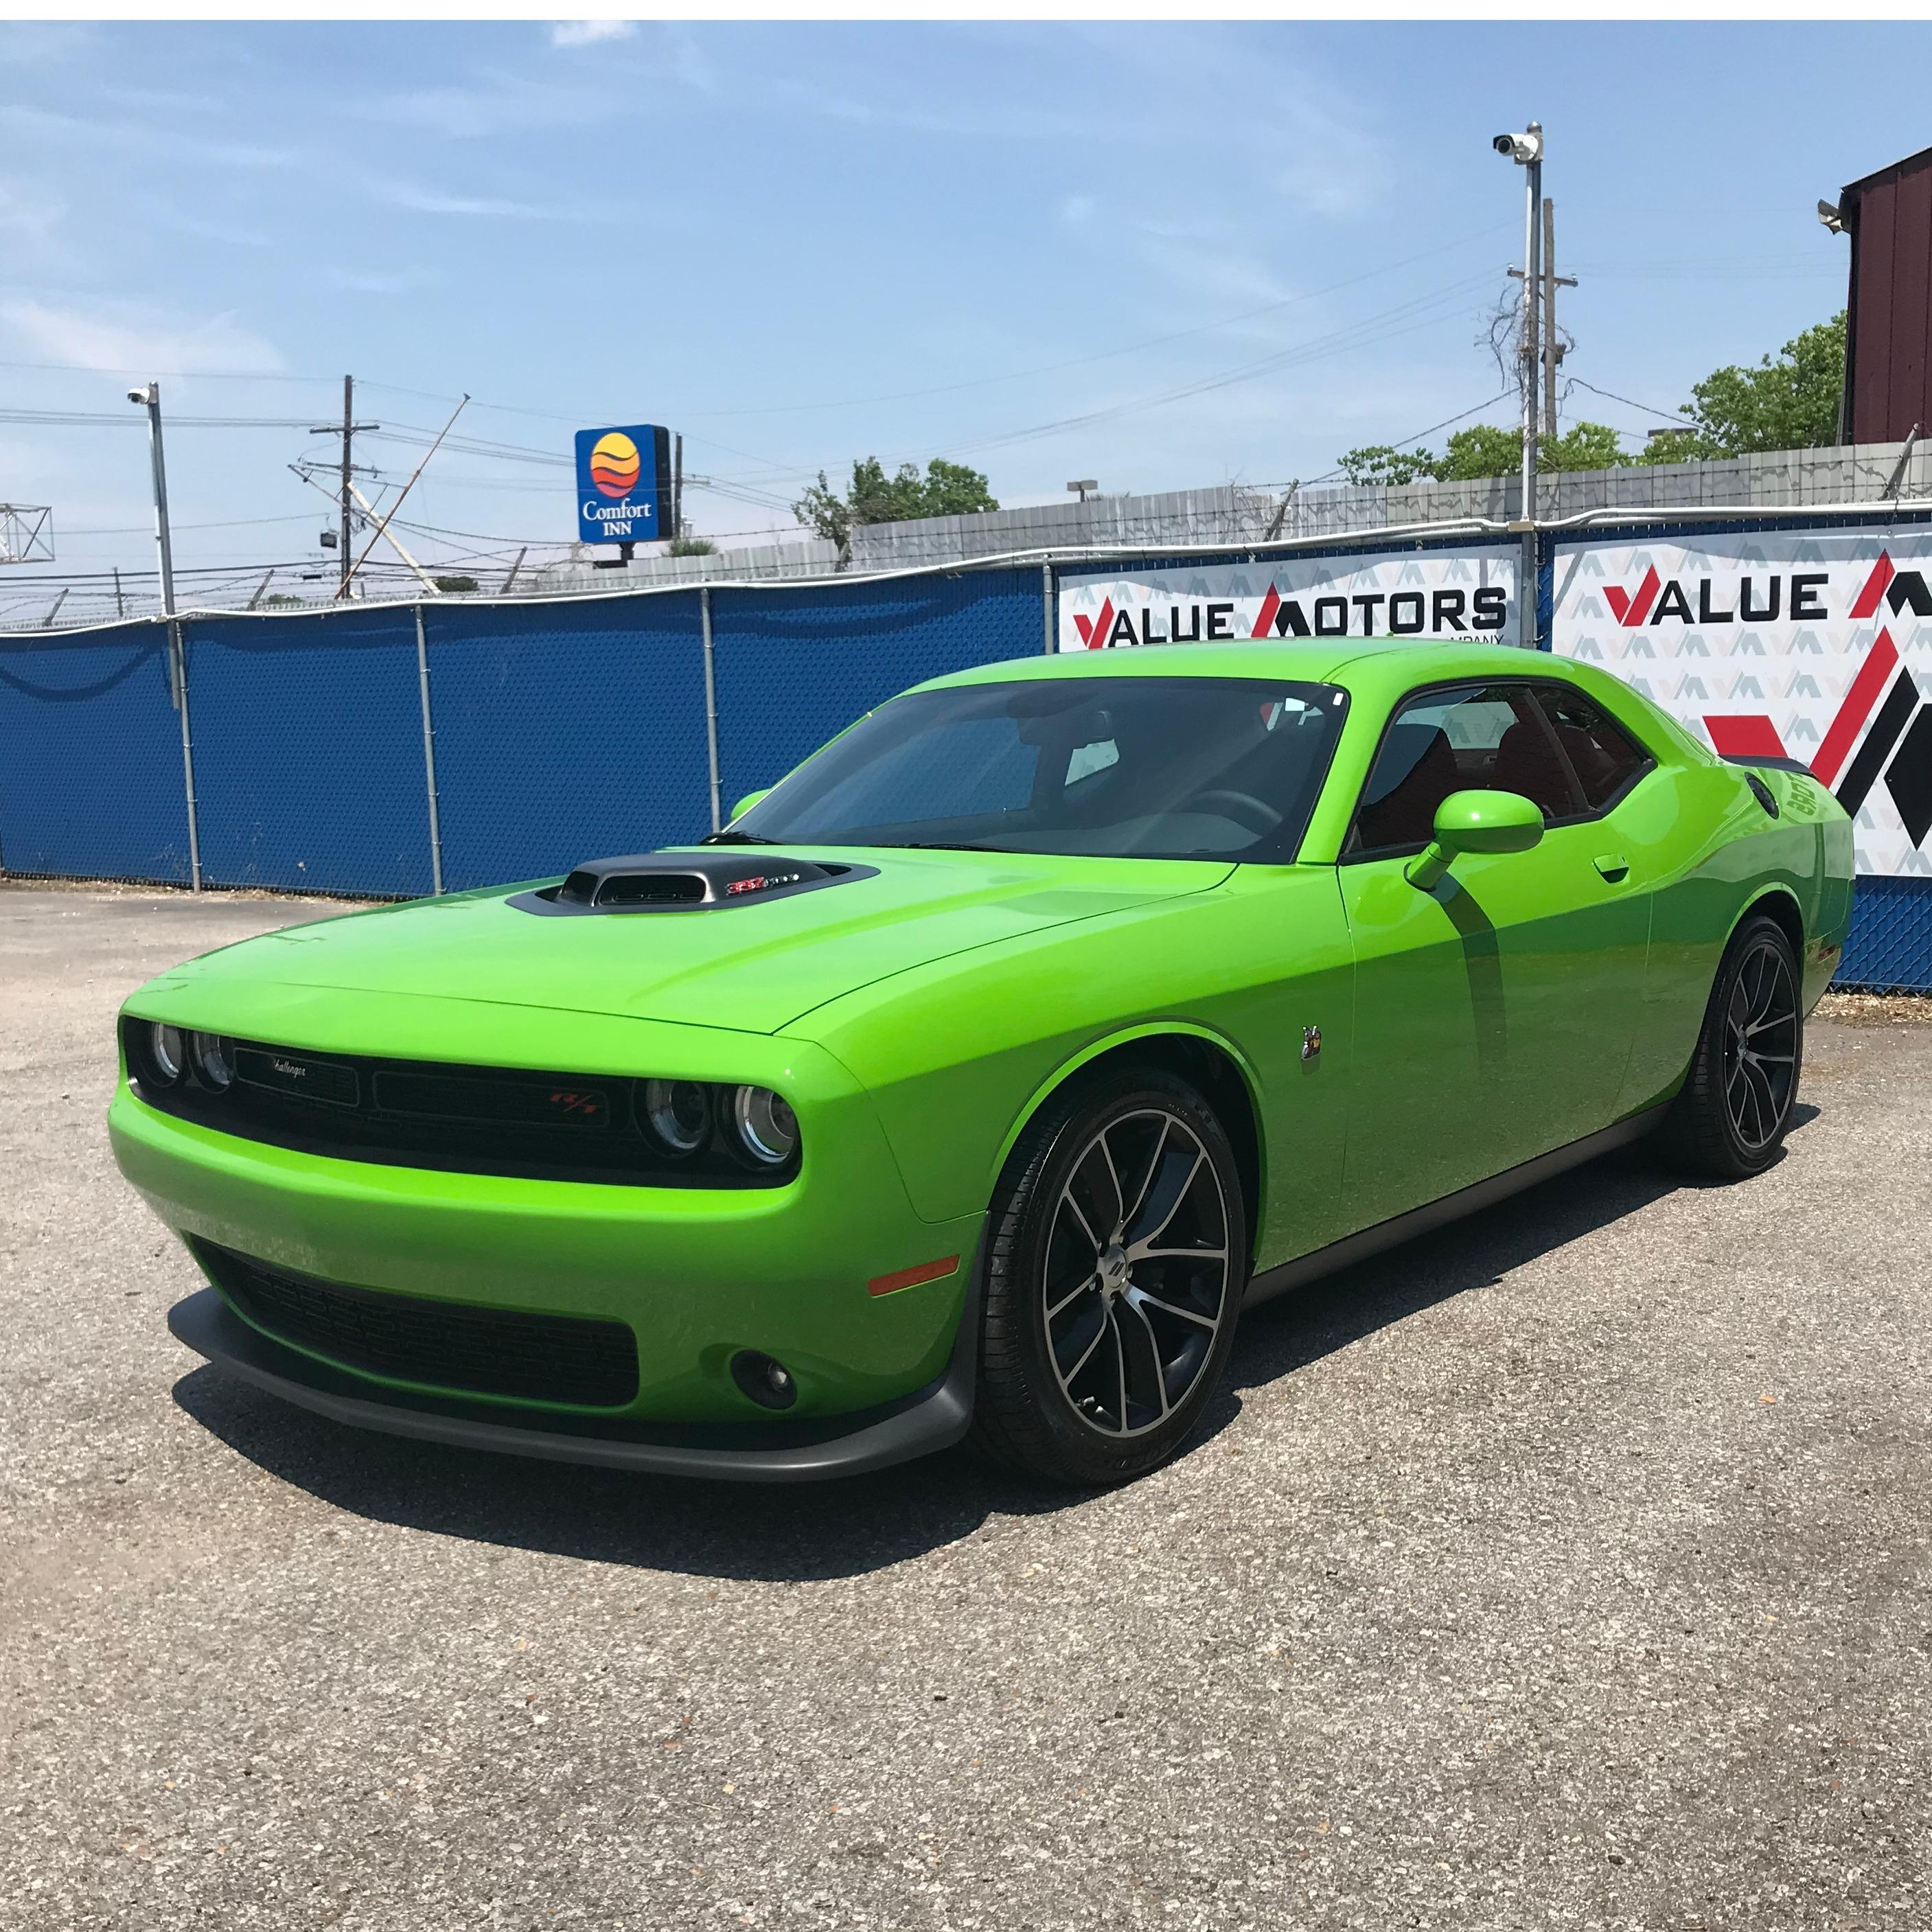 Value Motors Company Best Used Cars Metairie